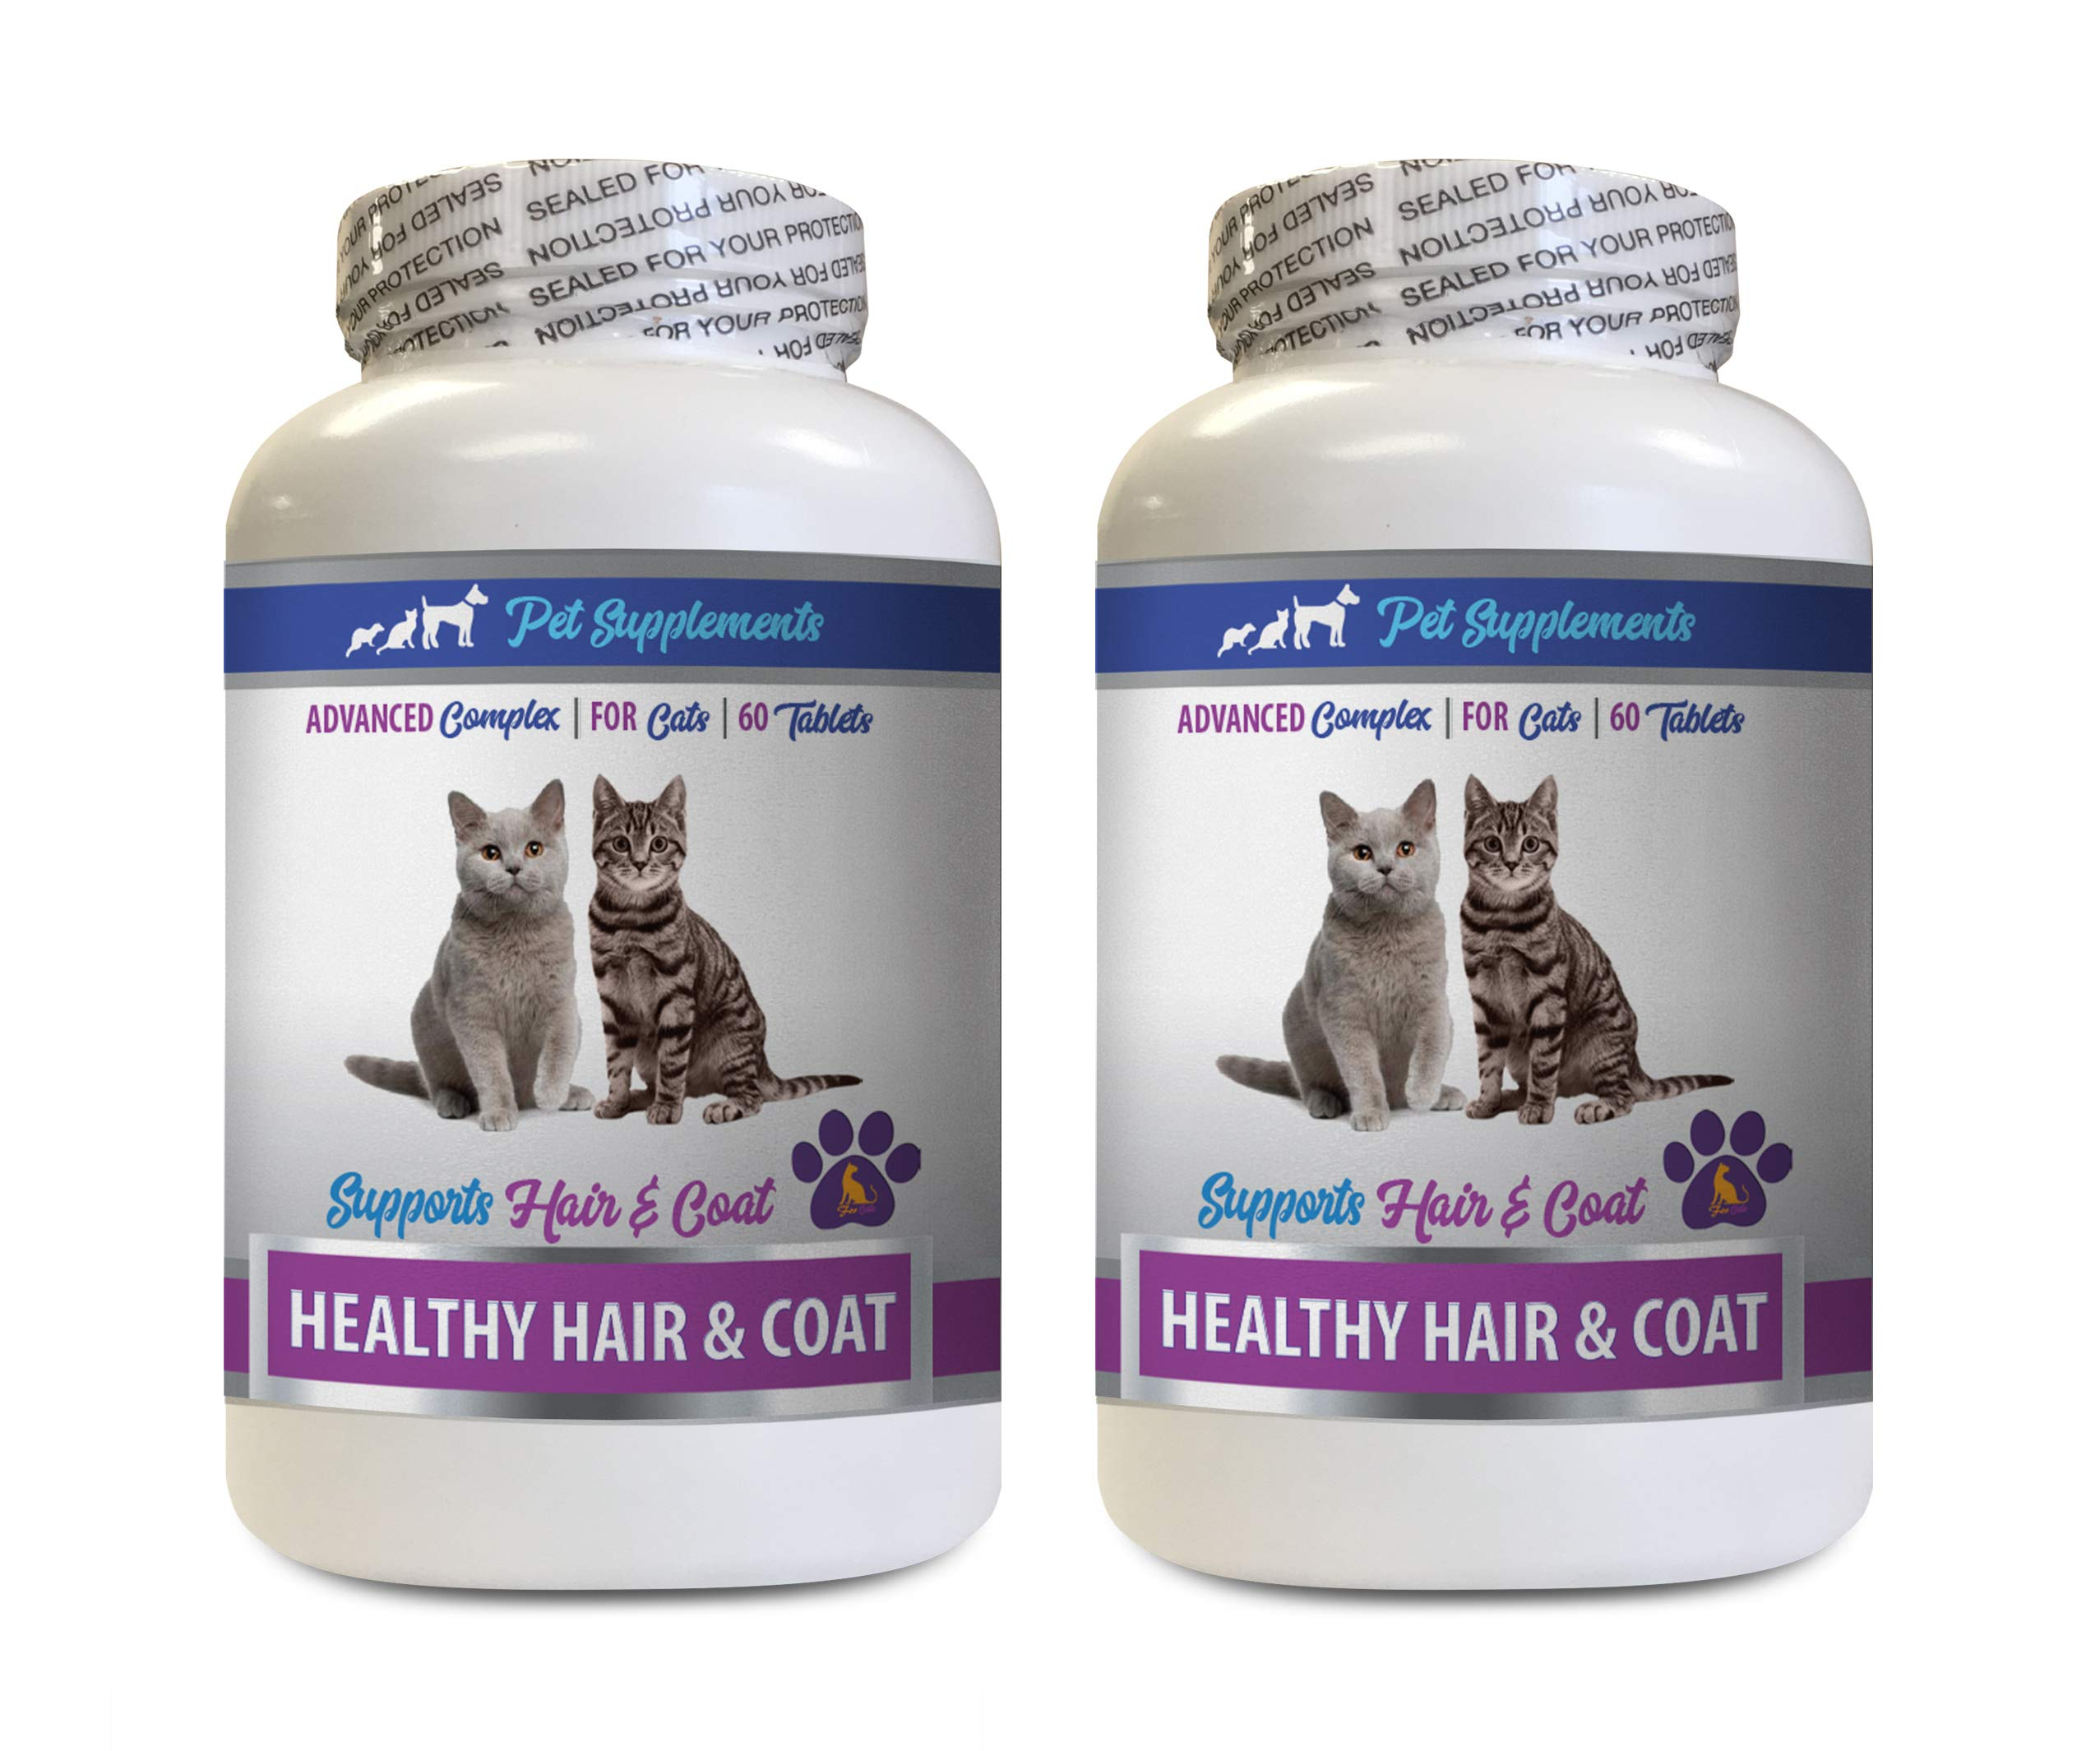 cat Hair and Skin Supplement - Best Healthy Hair and Coat Supplement for Cats - Advanced Complex - Nail Health - Skin Care for Cats - 2 Bottles (120 Tablets) by PET SUPPLEMENTS